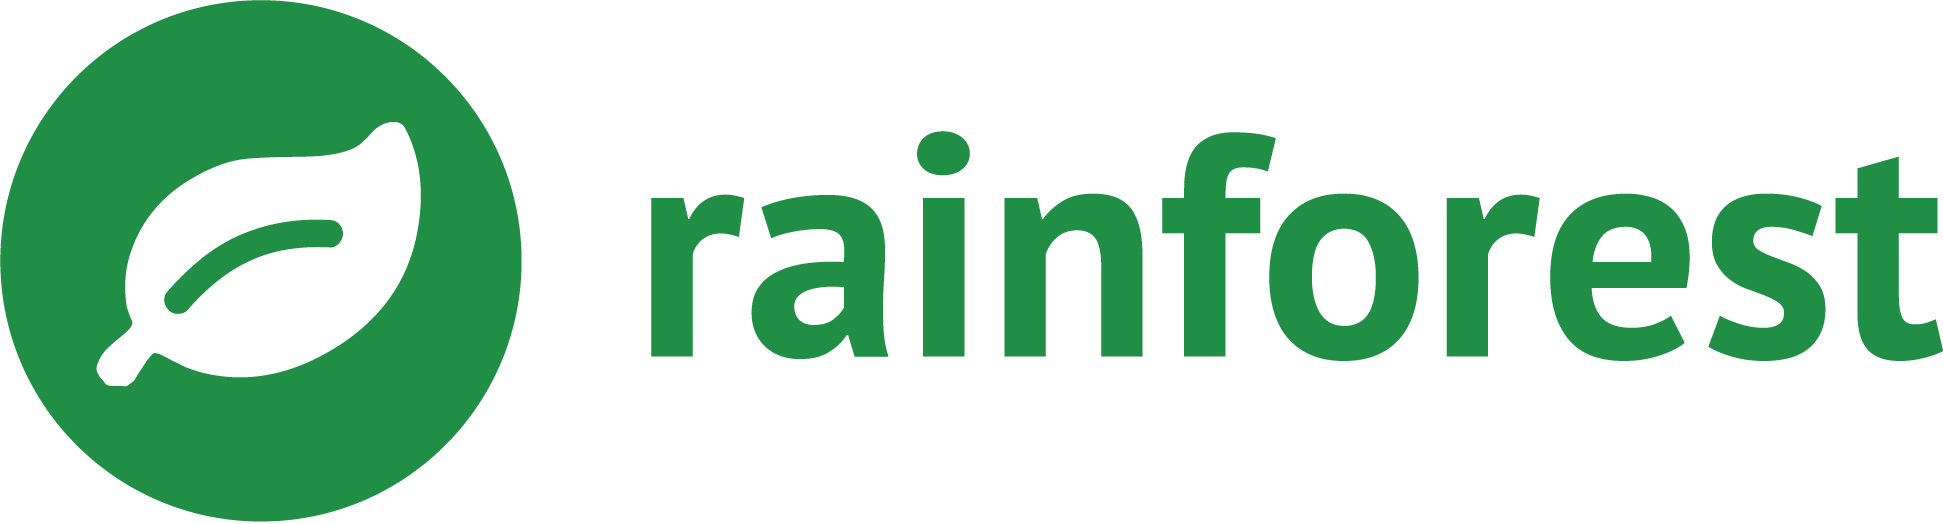 Rainforest_logo